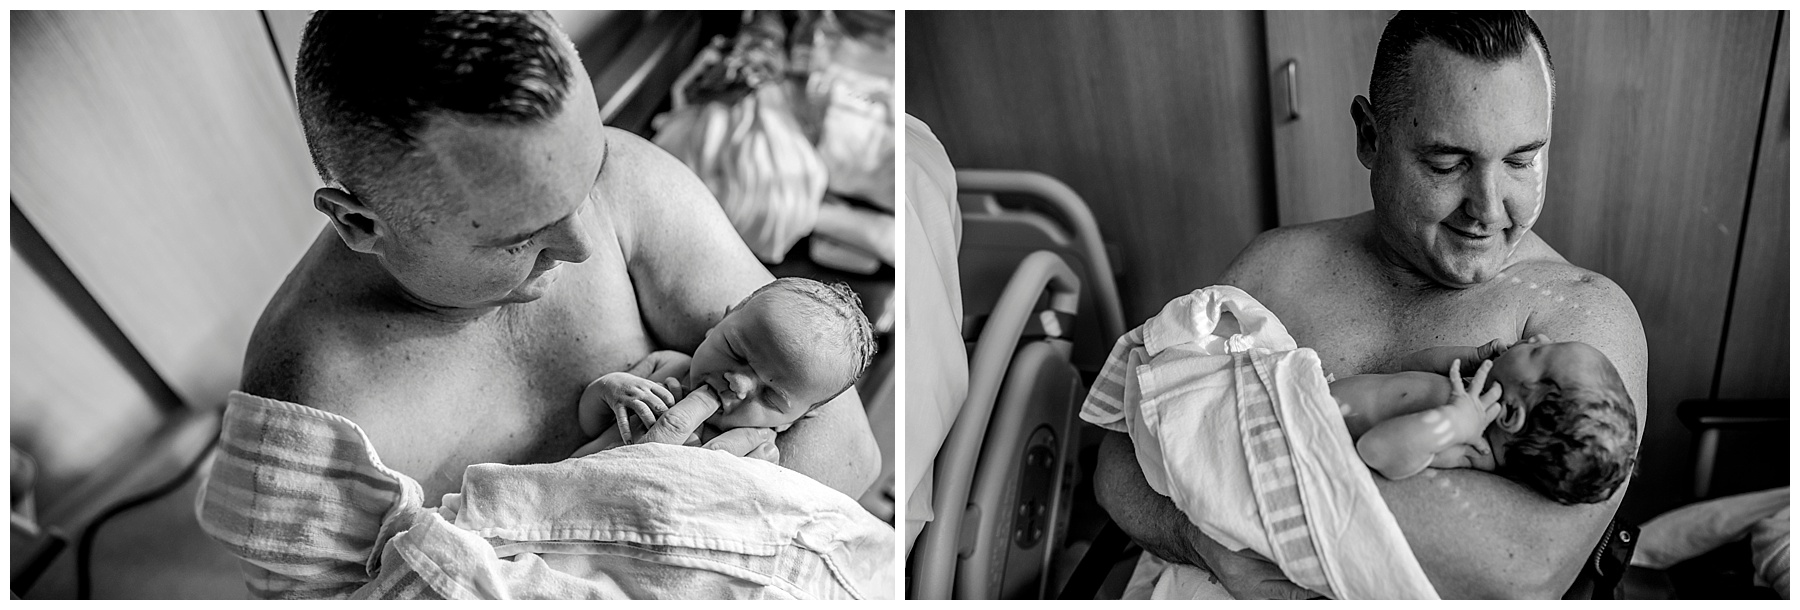 Mornington peninsula maternity, birth and newborn photography - first time dad - birth (5).jpg